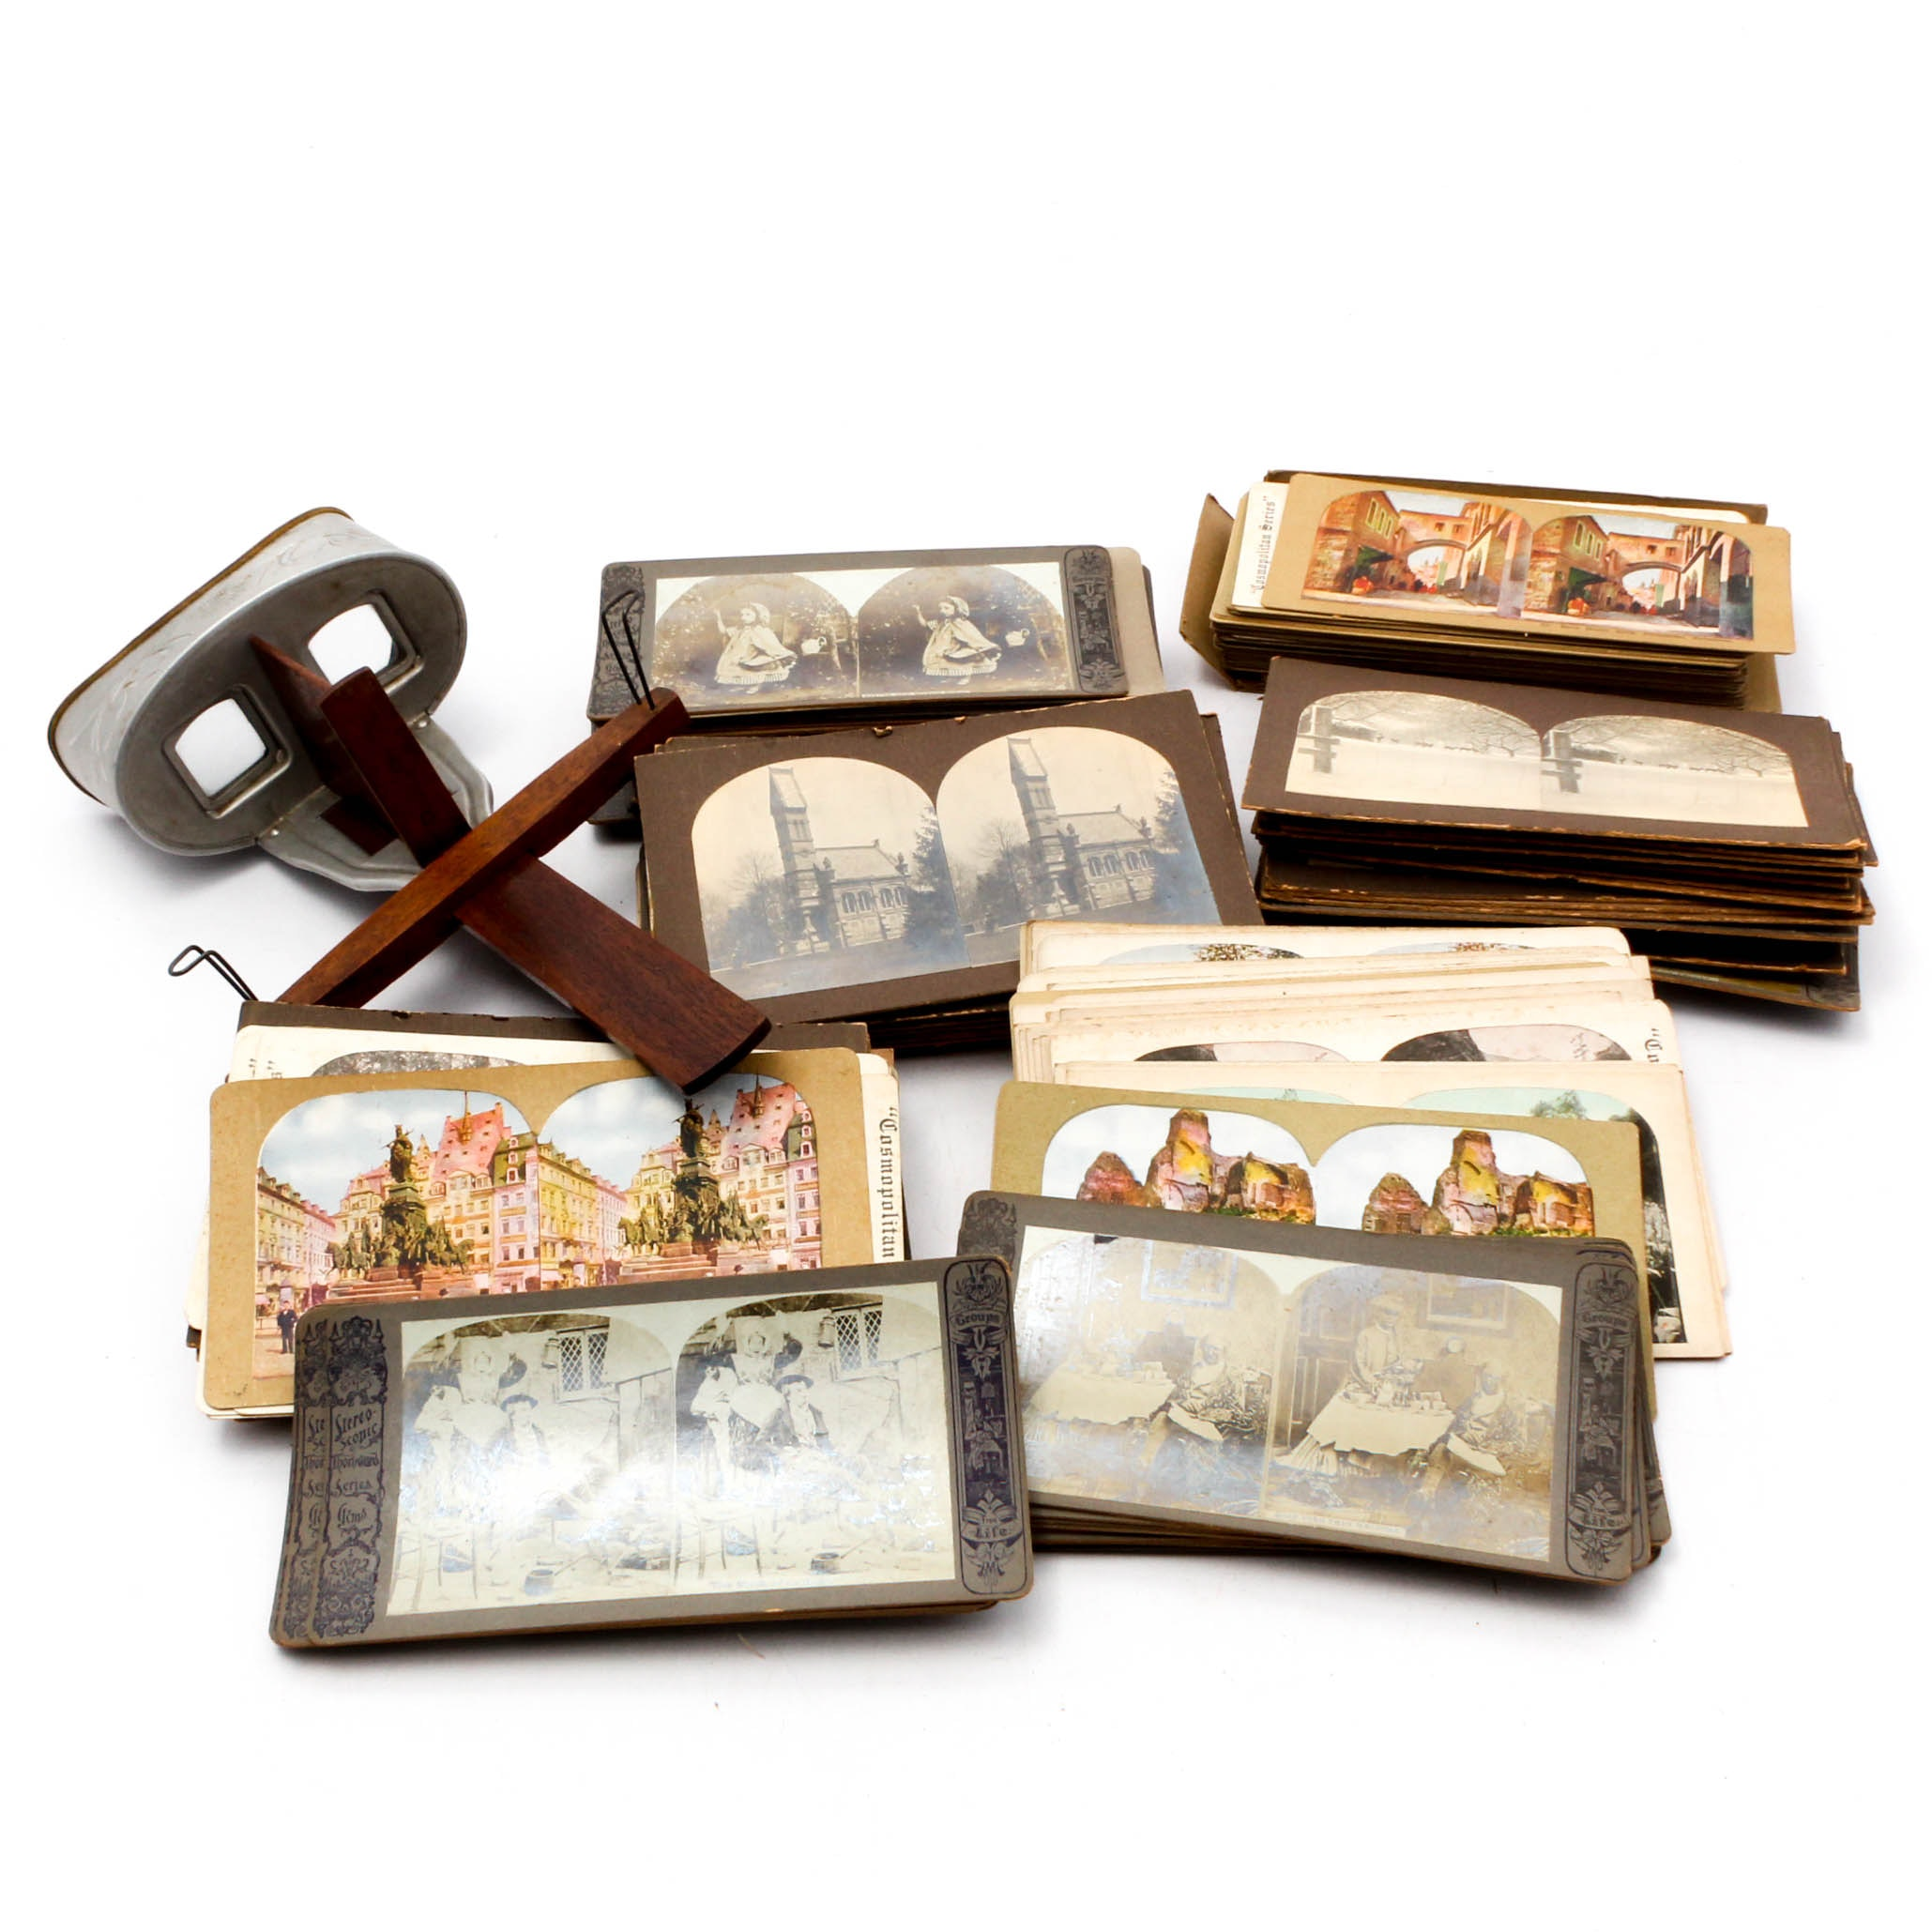 Underwood & Underwood Stereoscope with View Cards